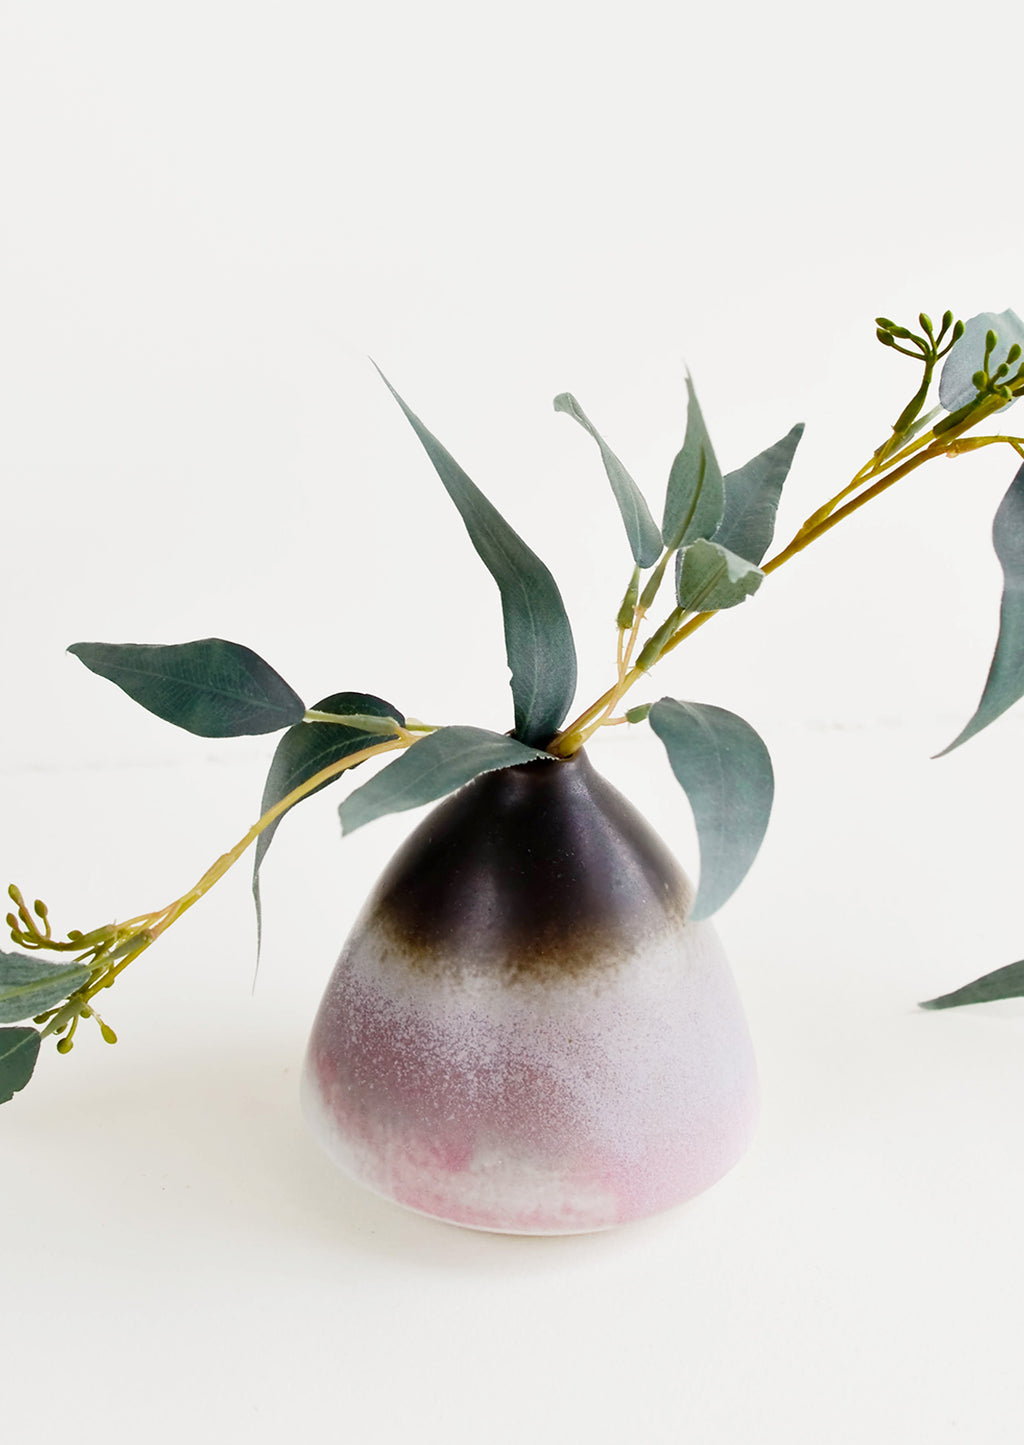 1: Round tapered bud vase with narrow top and wide bottom, brown at top transitions to purple at bottom. Shown displaying single eucalyptus branch.